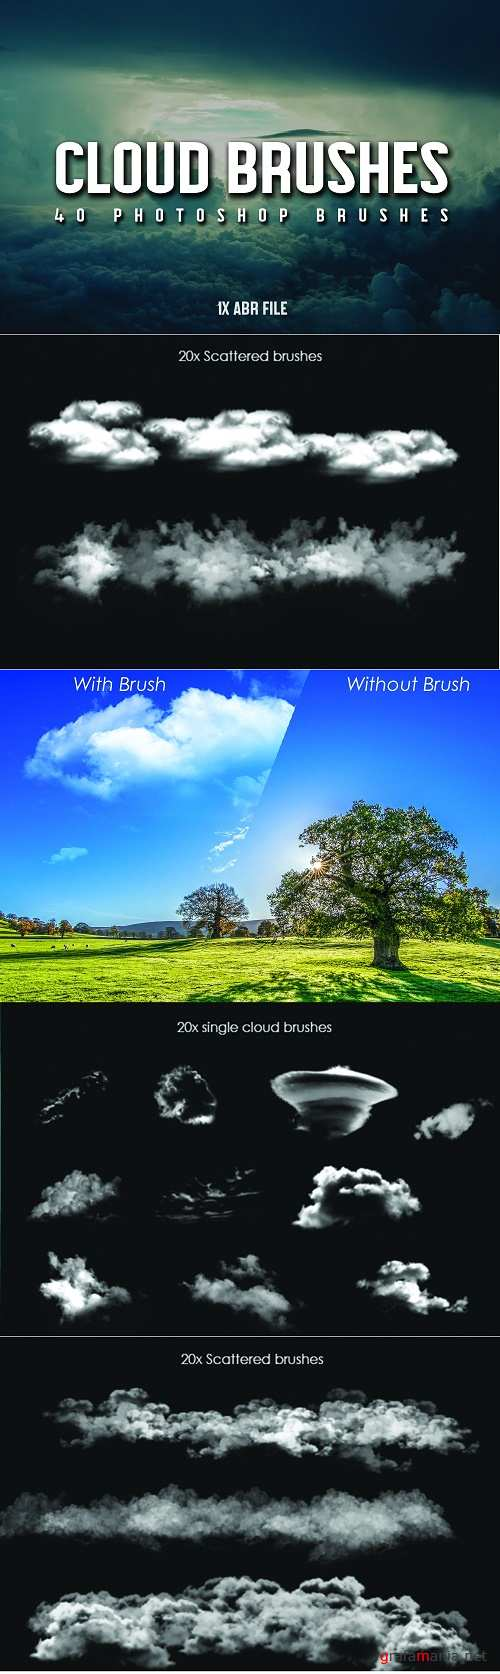 40 Cloud Brushes for Photoshop - 3799716